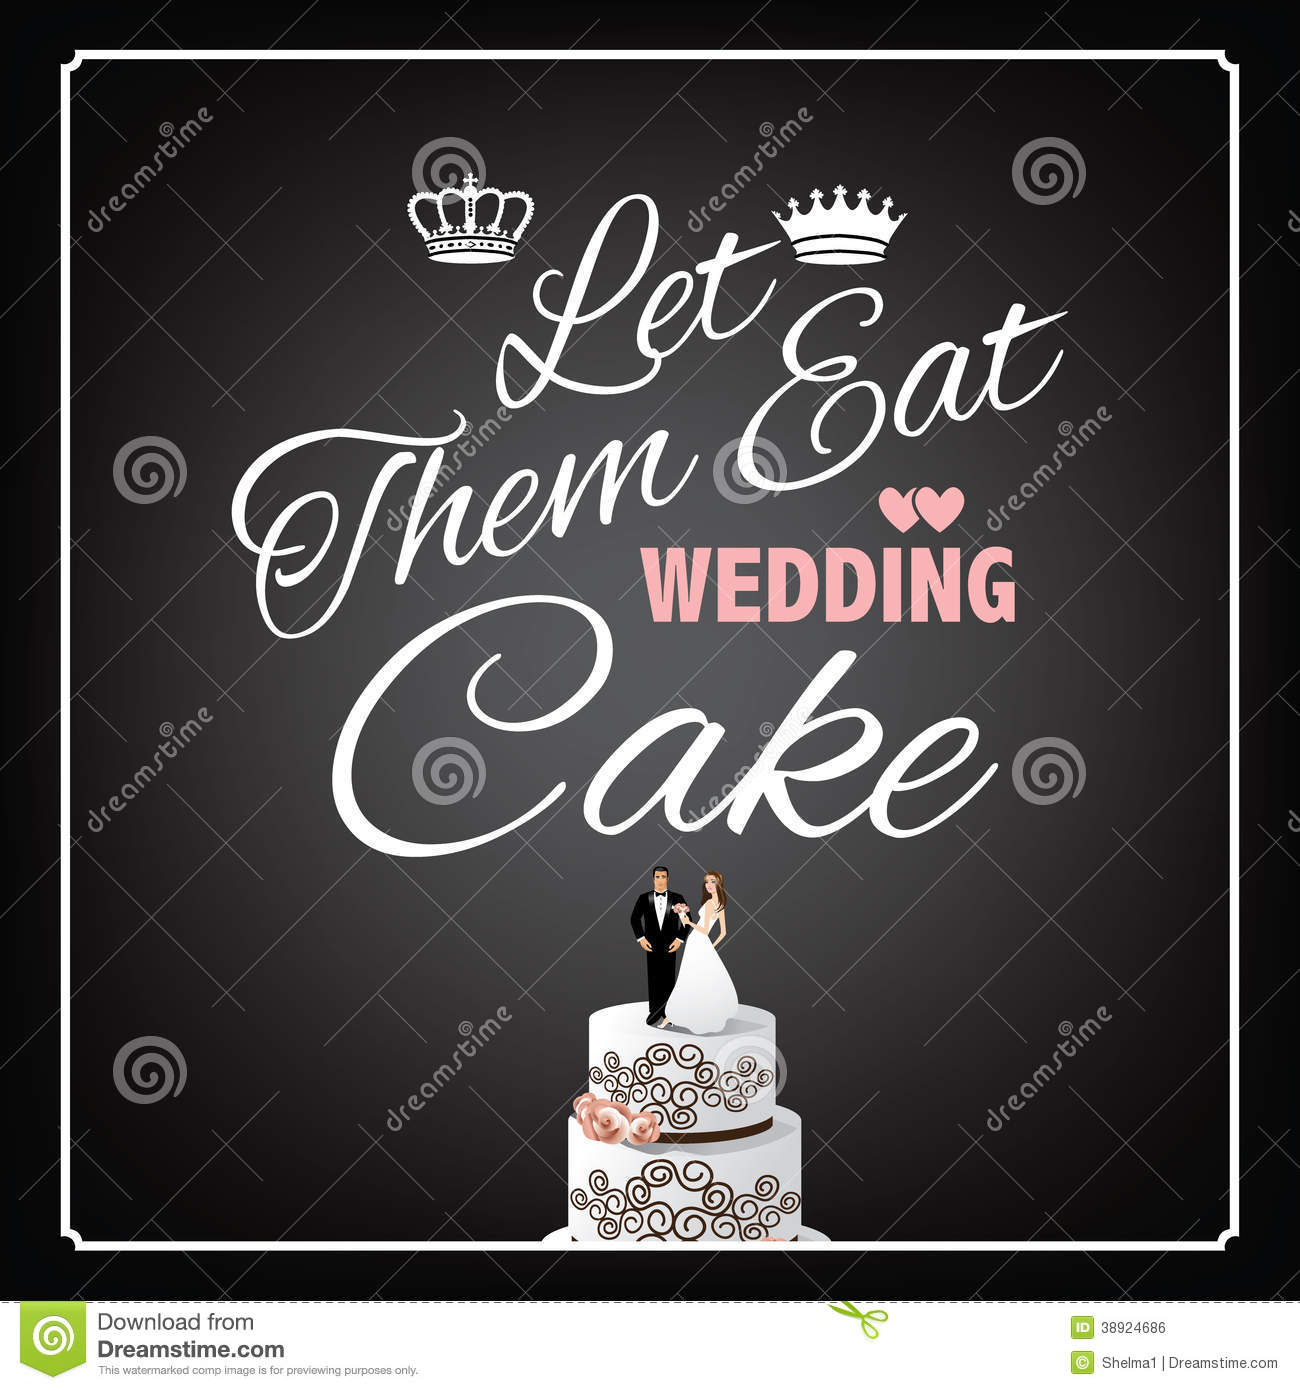 dream meaning eating wedding cake let them eat wedding cake design stock vector image 13733